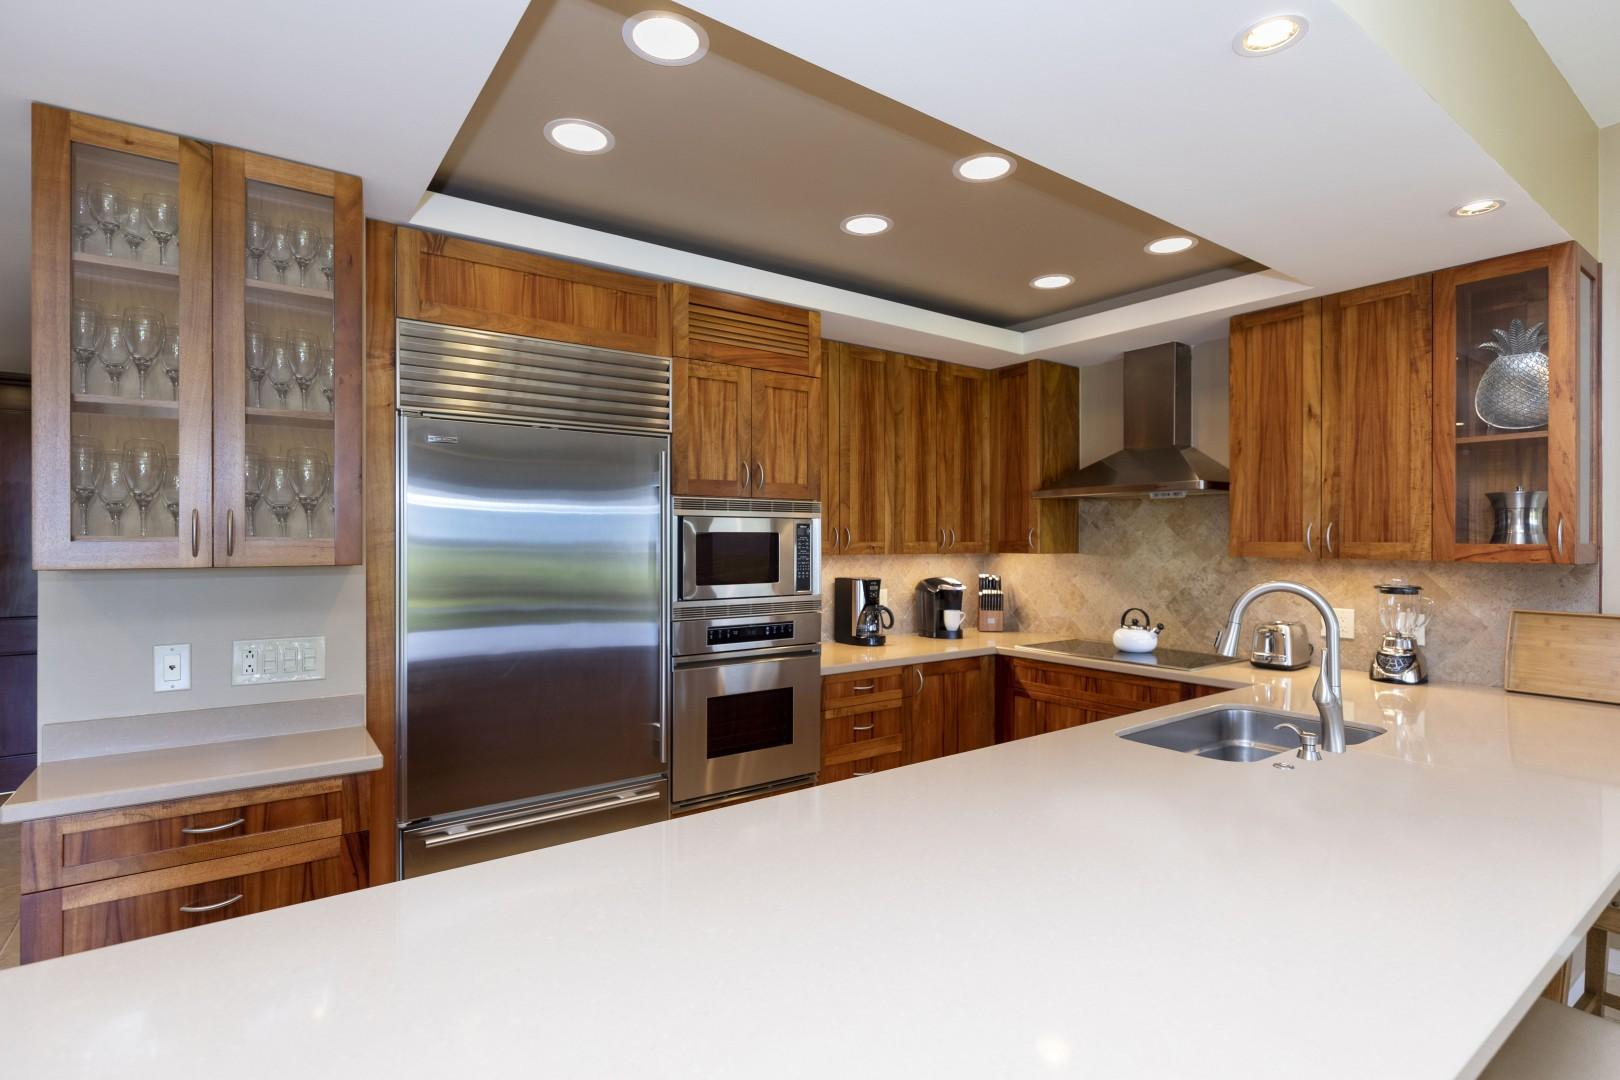 Upcale appliances and many items to utilize.